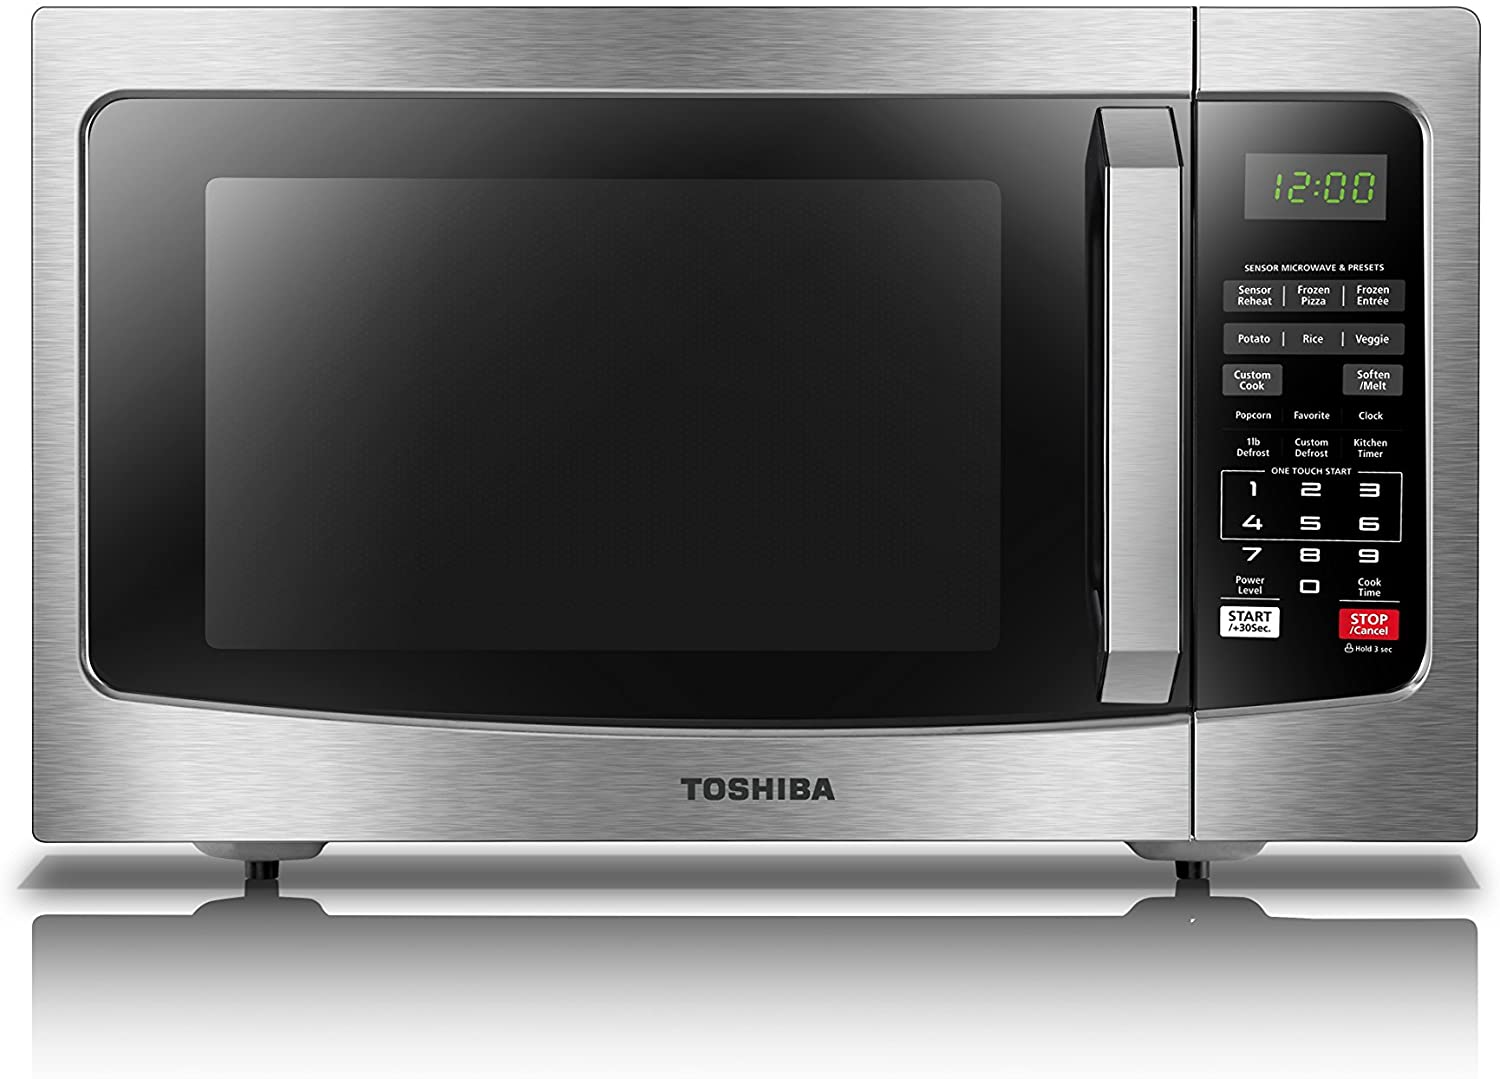 Toshiba EM131A5C-SS ECO Smart Stainless Microwave Oven, 1.2 Cu-Feet